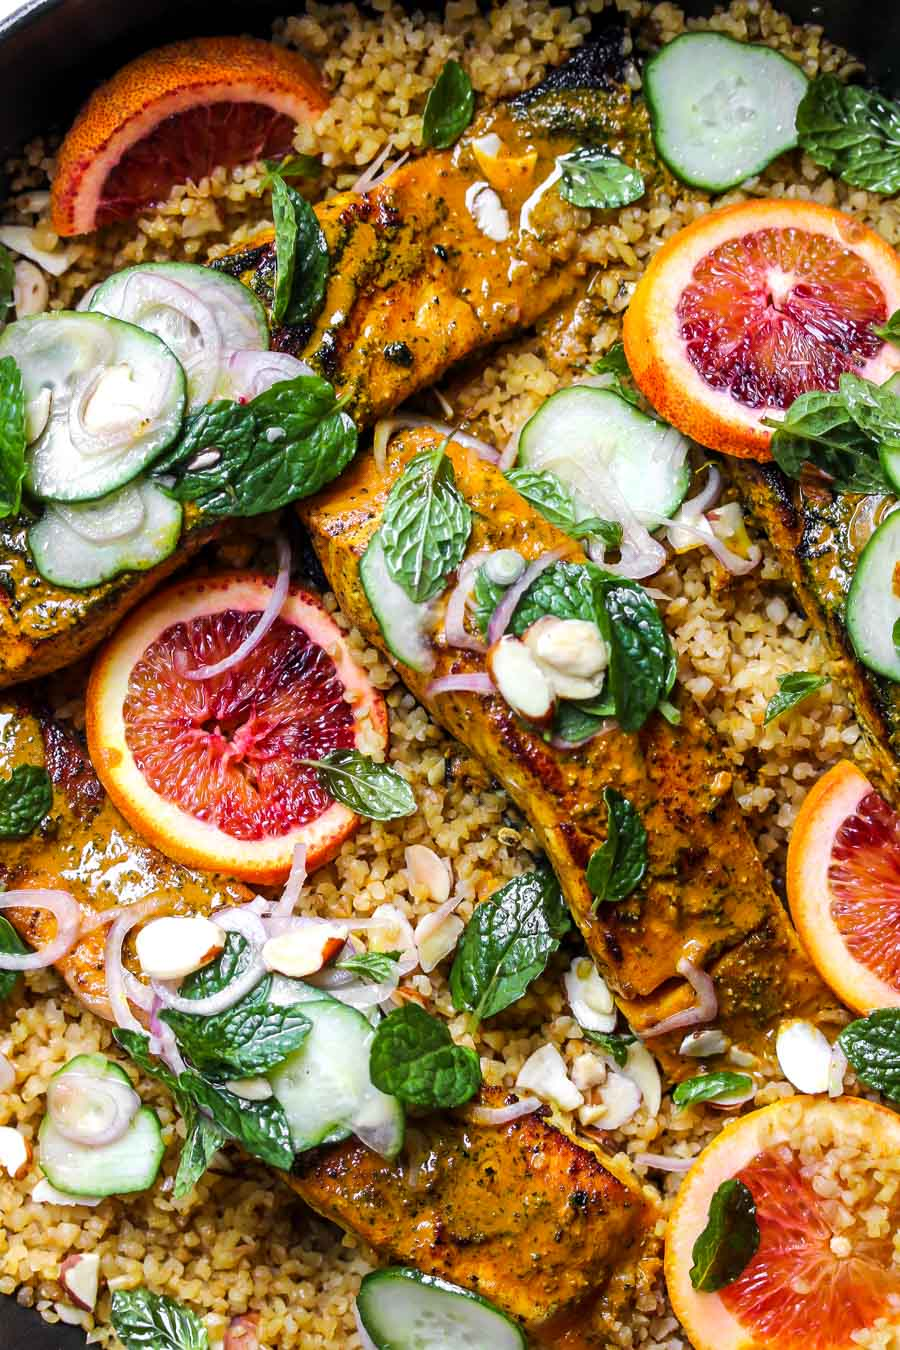 Turmeric-glazed salmon with bulgur and cucumber-mint salad